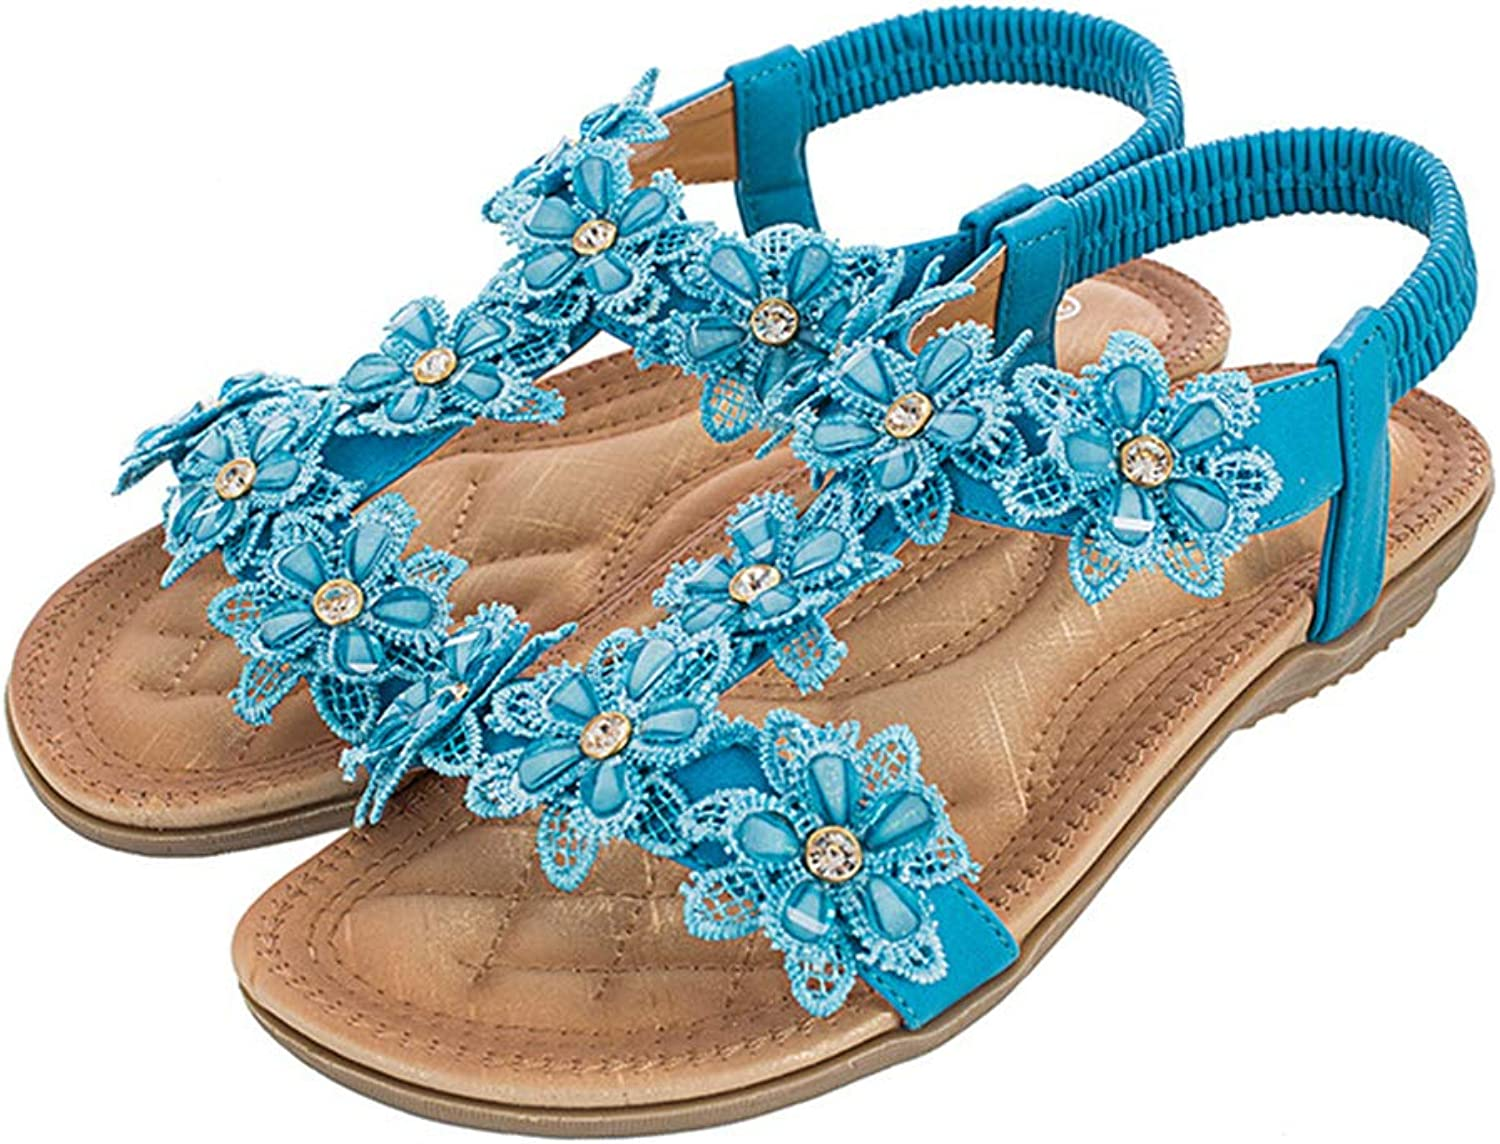 Navoku Women's Fashion Casual Flowers Sandals Flat Sandles